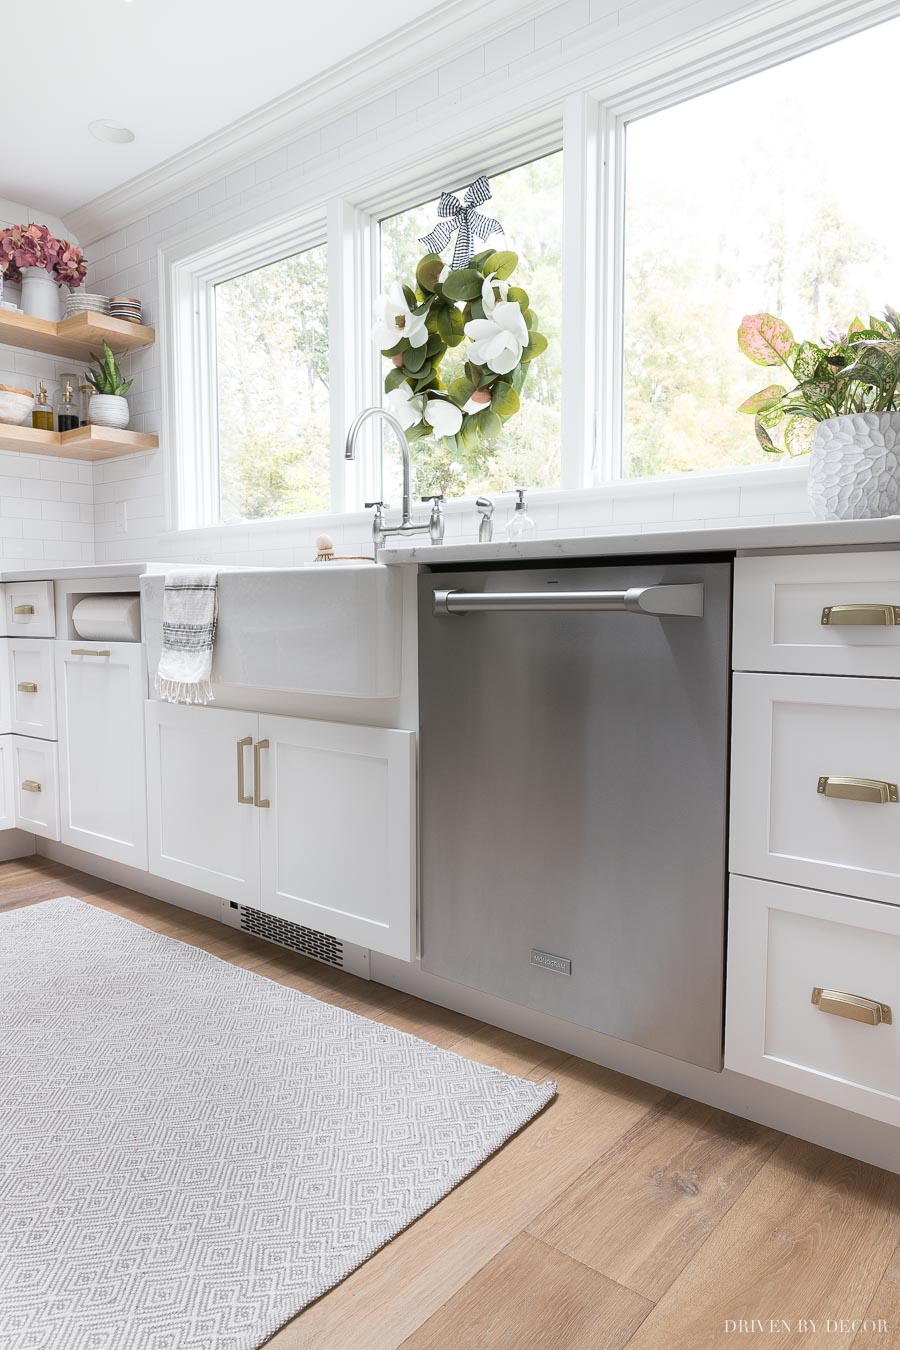 Love my Monogram dishwasher and that I can run my white toe kick in front of it to make it look built in!